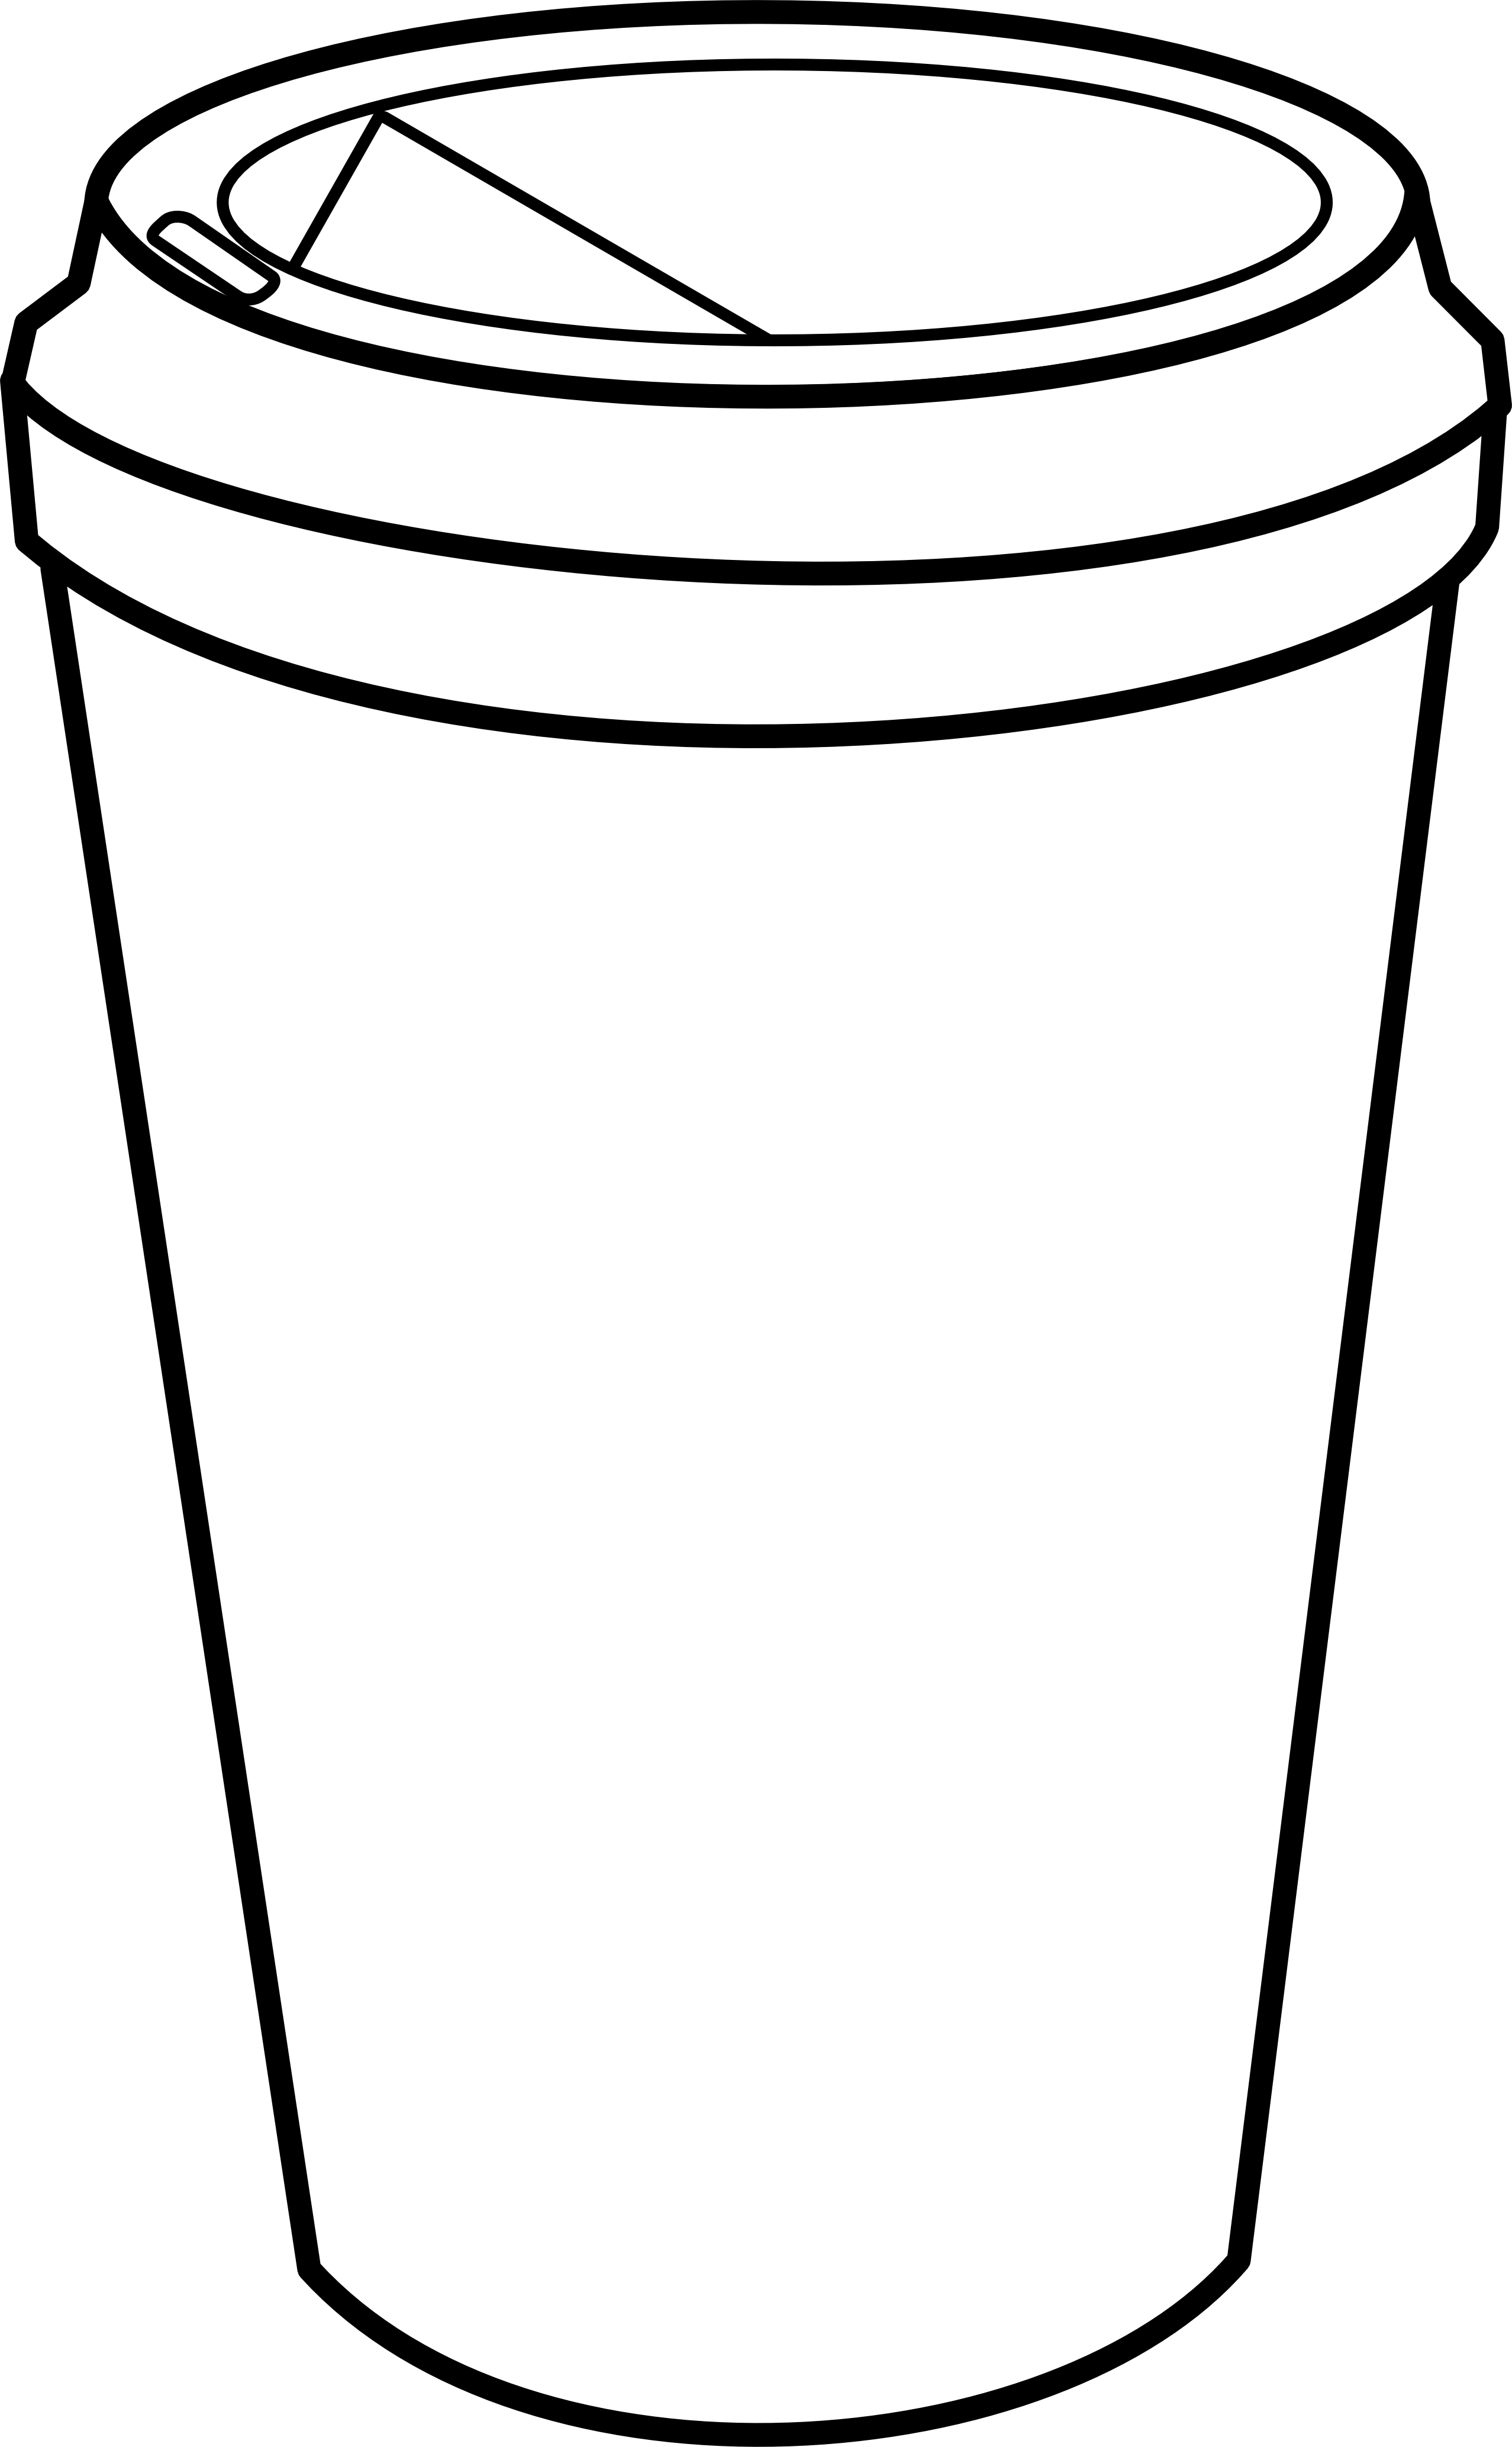 clip art library library Top cup coloring pages. Mug clipart colouring page.